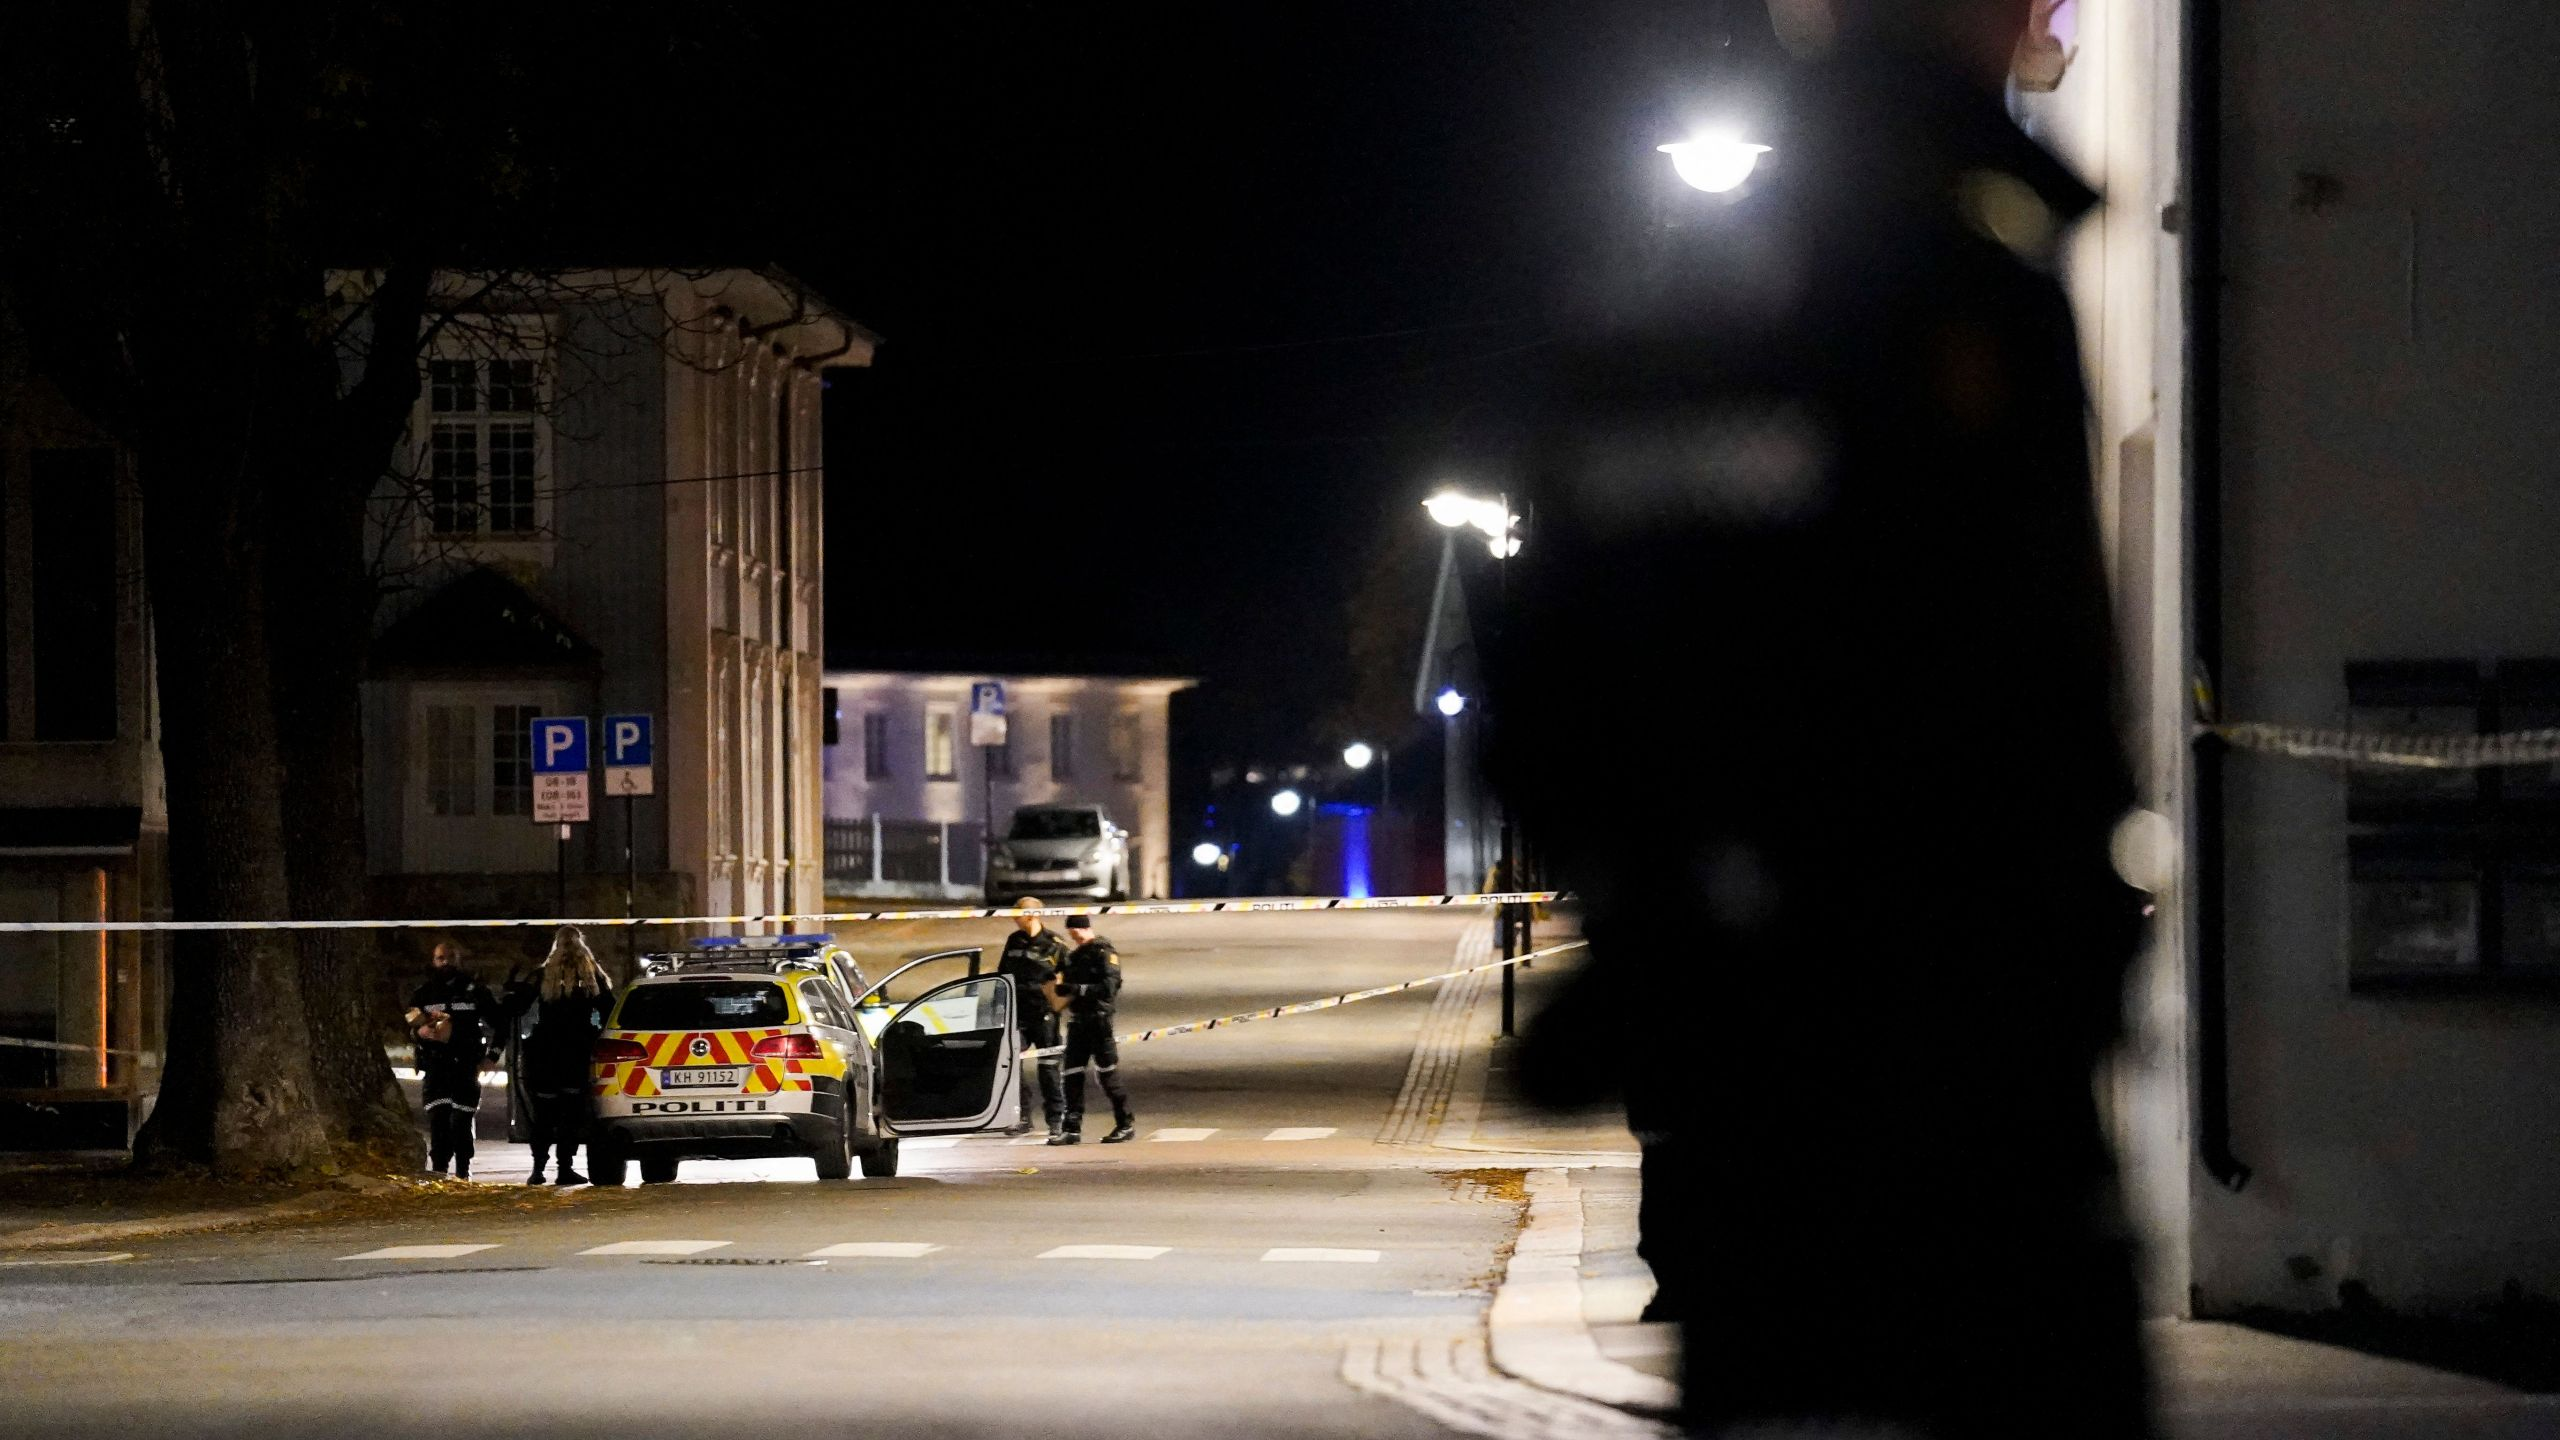 Police officers cordon off the scene where they are investigating in Kongsberg, Norway after a man armed with bow killed several people before he was arrested by police on October 13, 2021. (HAKON MOSVOLD LARSEN/NTB/AFP via Getty Images)